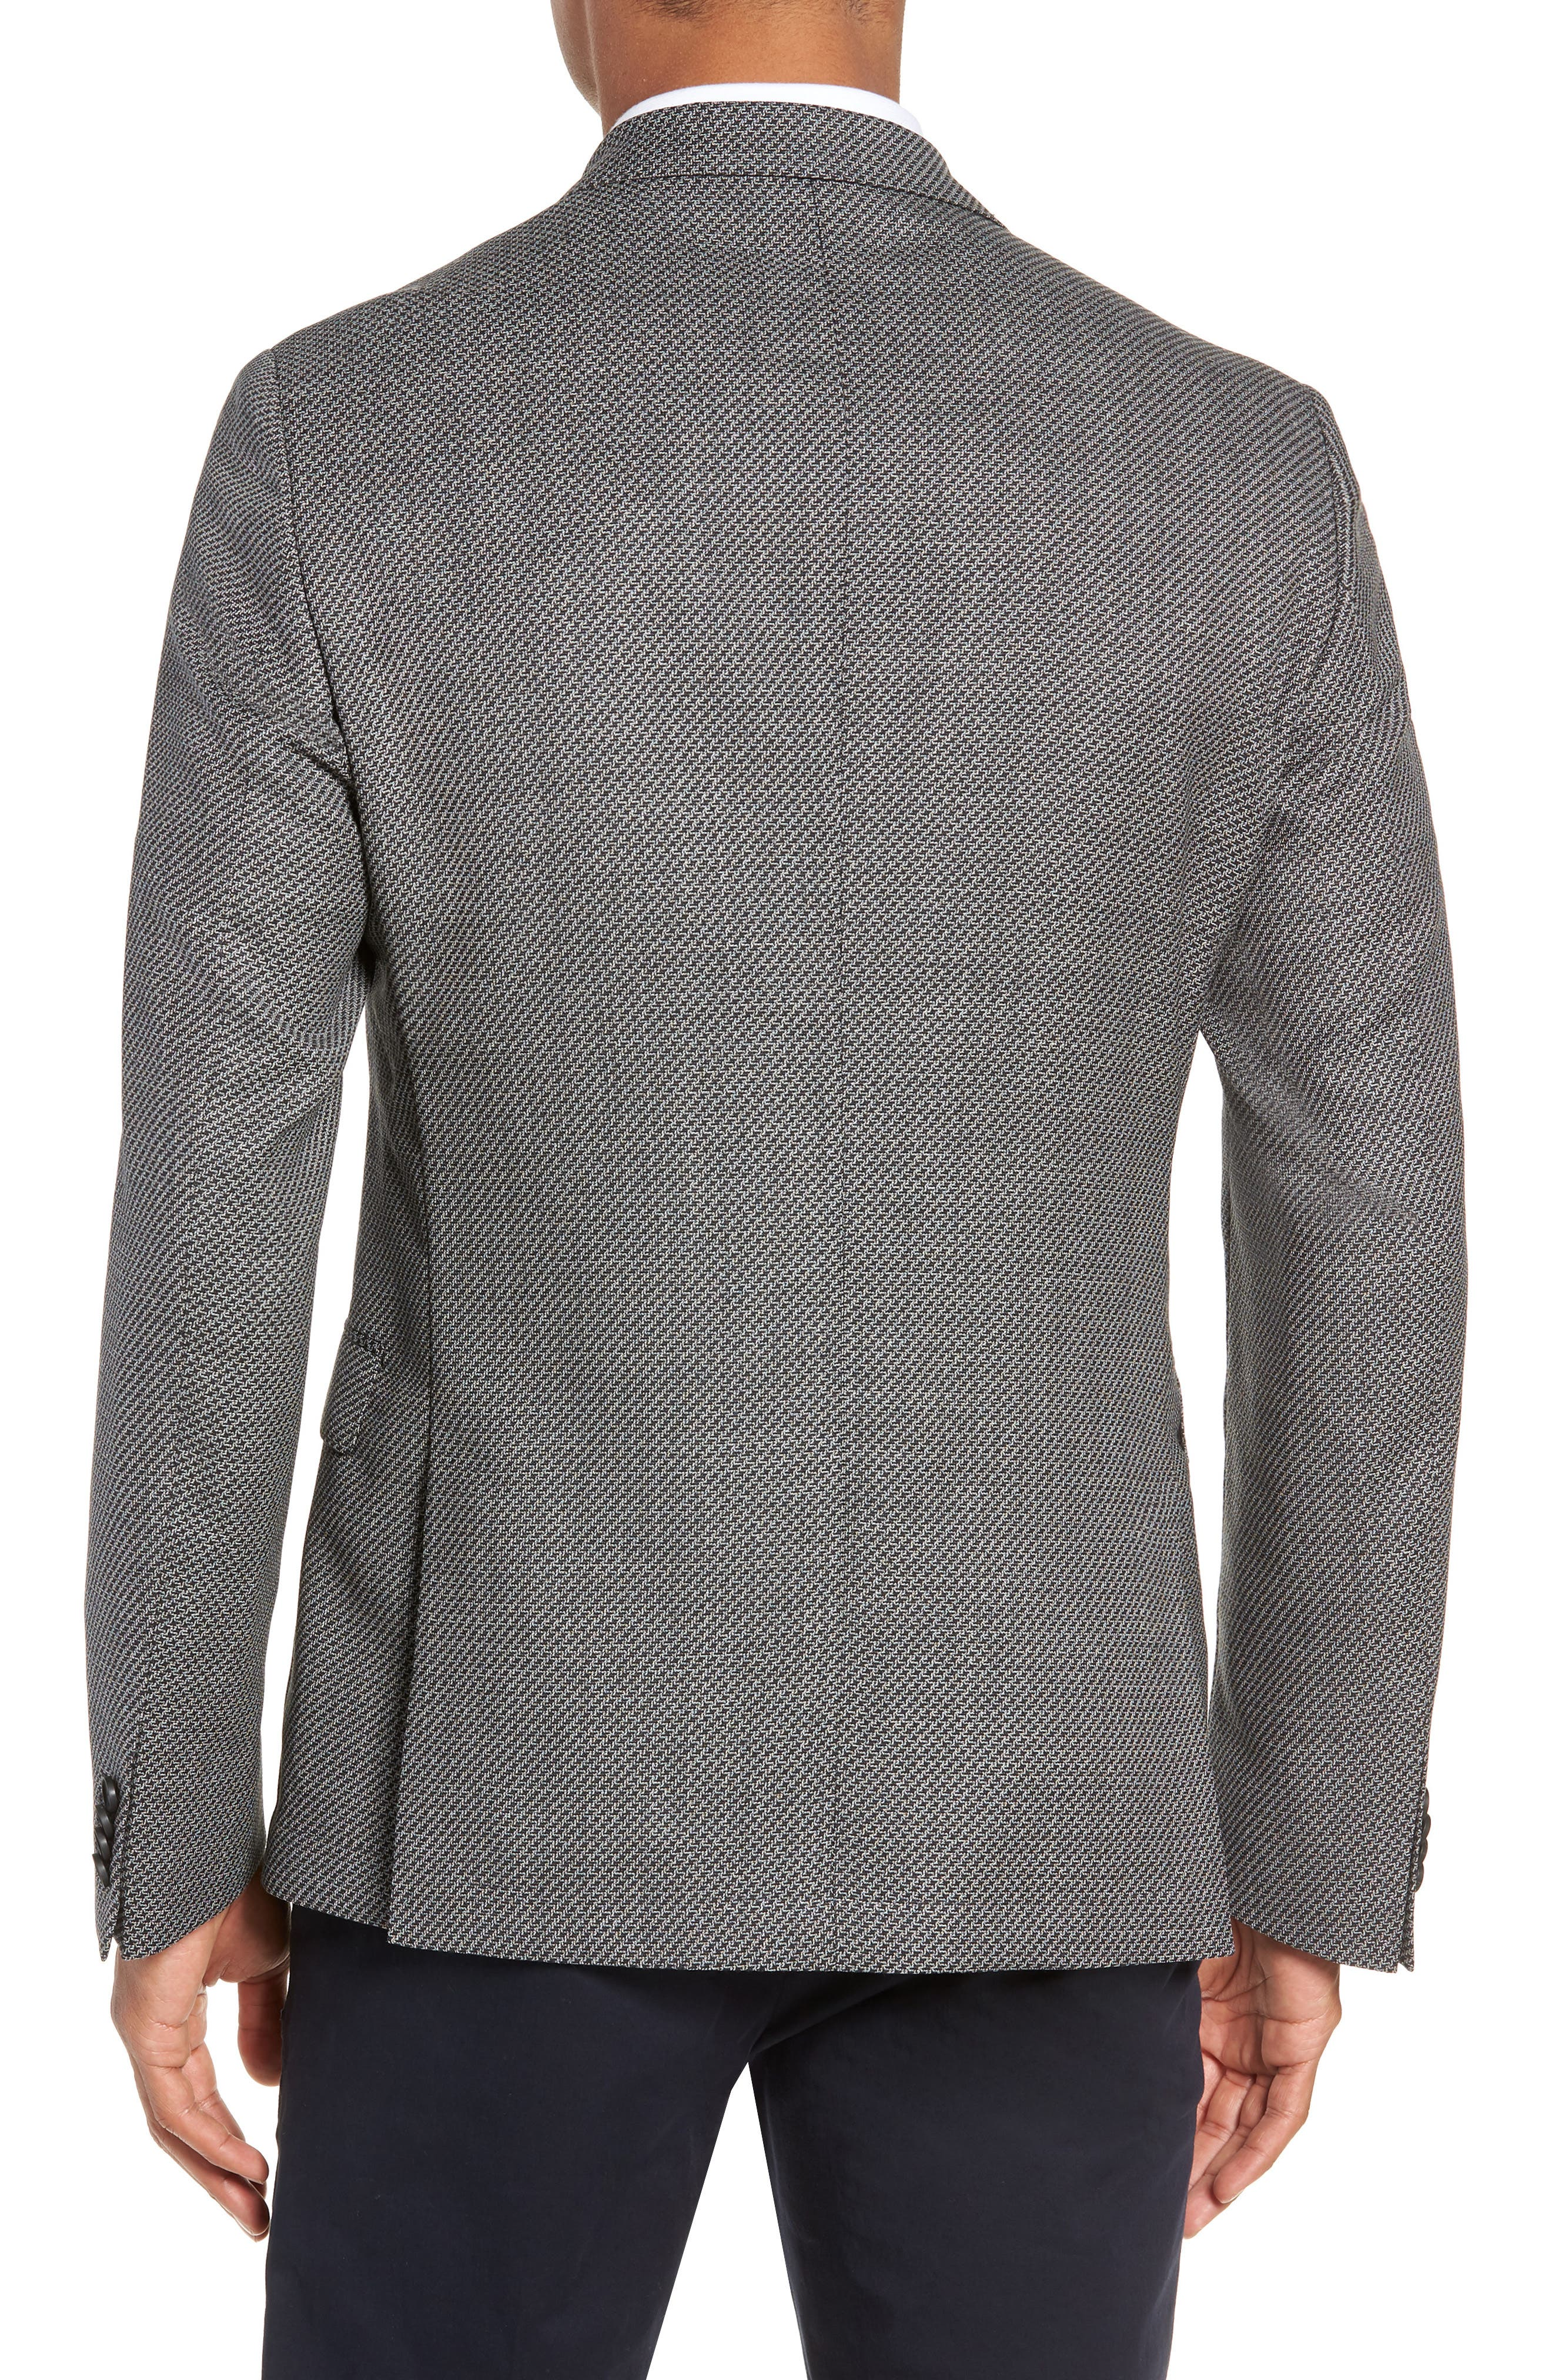 Nobis Trim Fit Houndstooth Wool Sport Coat,                             Alternate thumbnail 2, color,